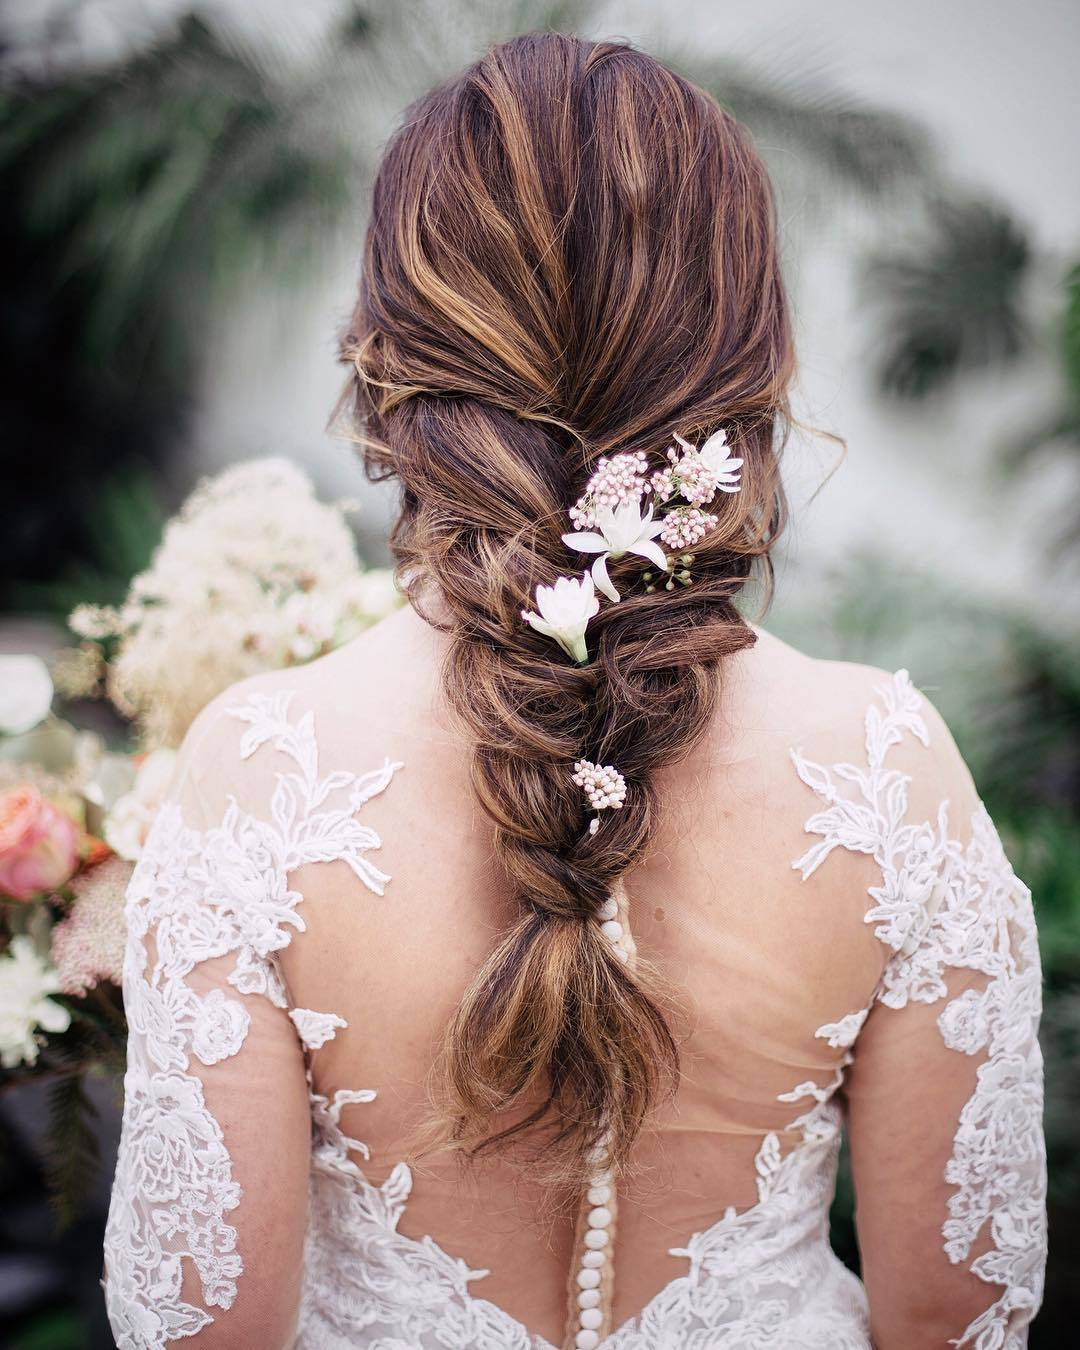 Wedding Hairstyle With Braids: 47 Stunning Wedding Hairstyles All Brides Will Love